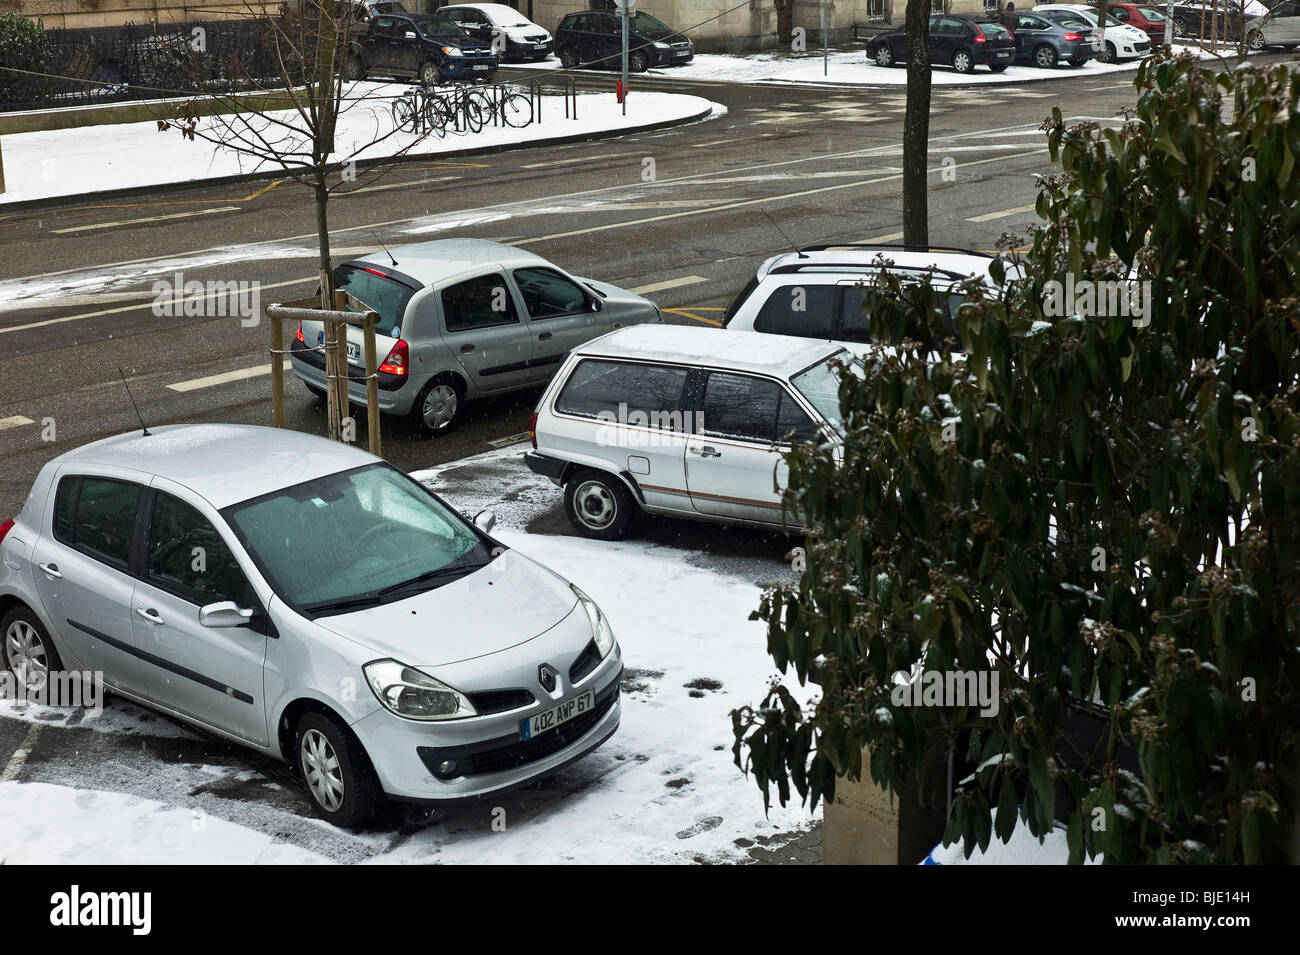 Parked cars on sidewalk with snow, Strasbourg, Alsace, France - Stock Image